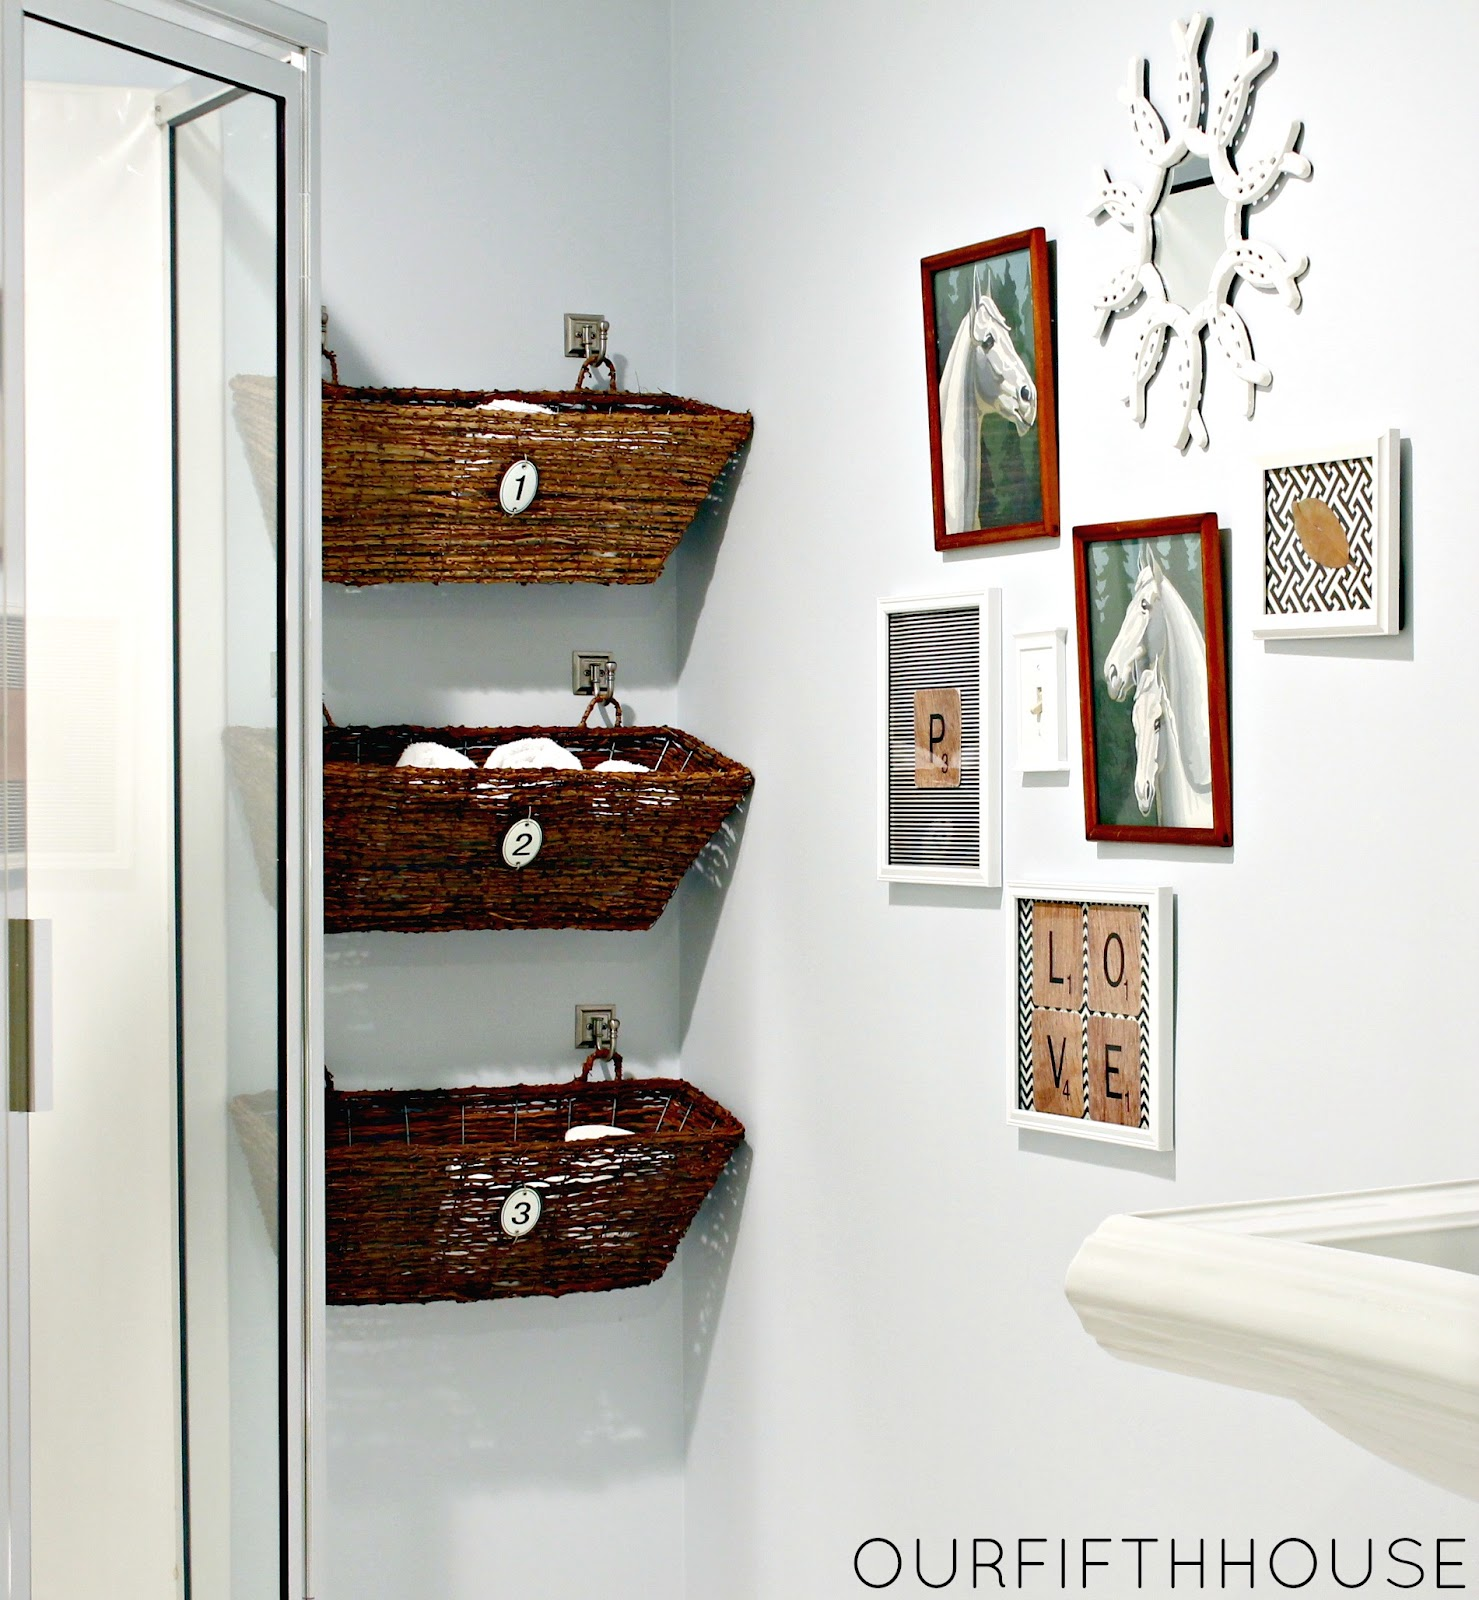 Bathroom wall storage baskets - Creating Storage In A Small Bathroom